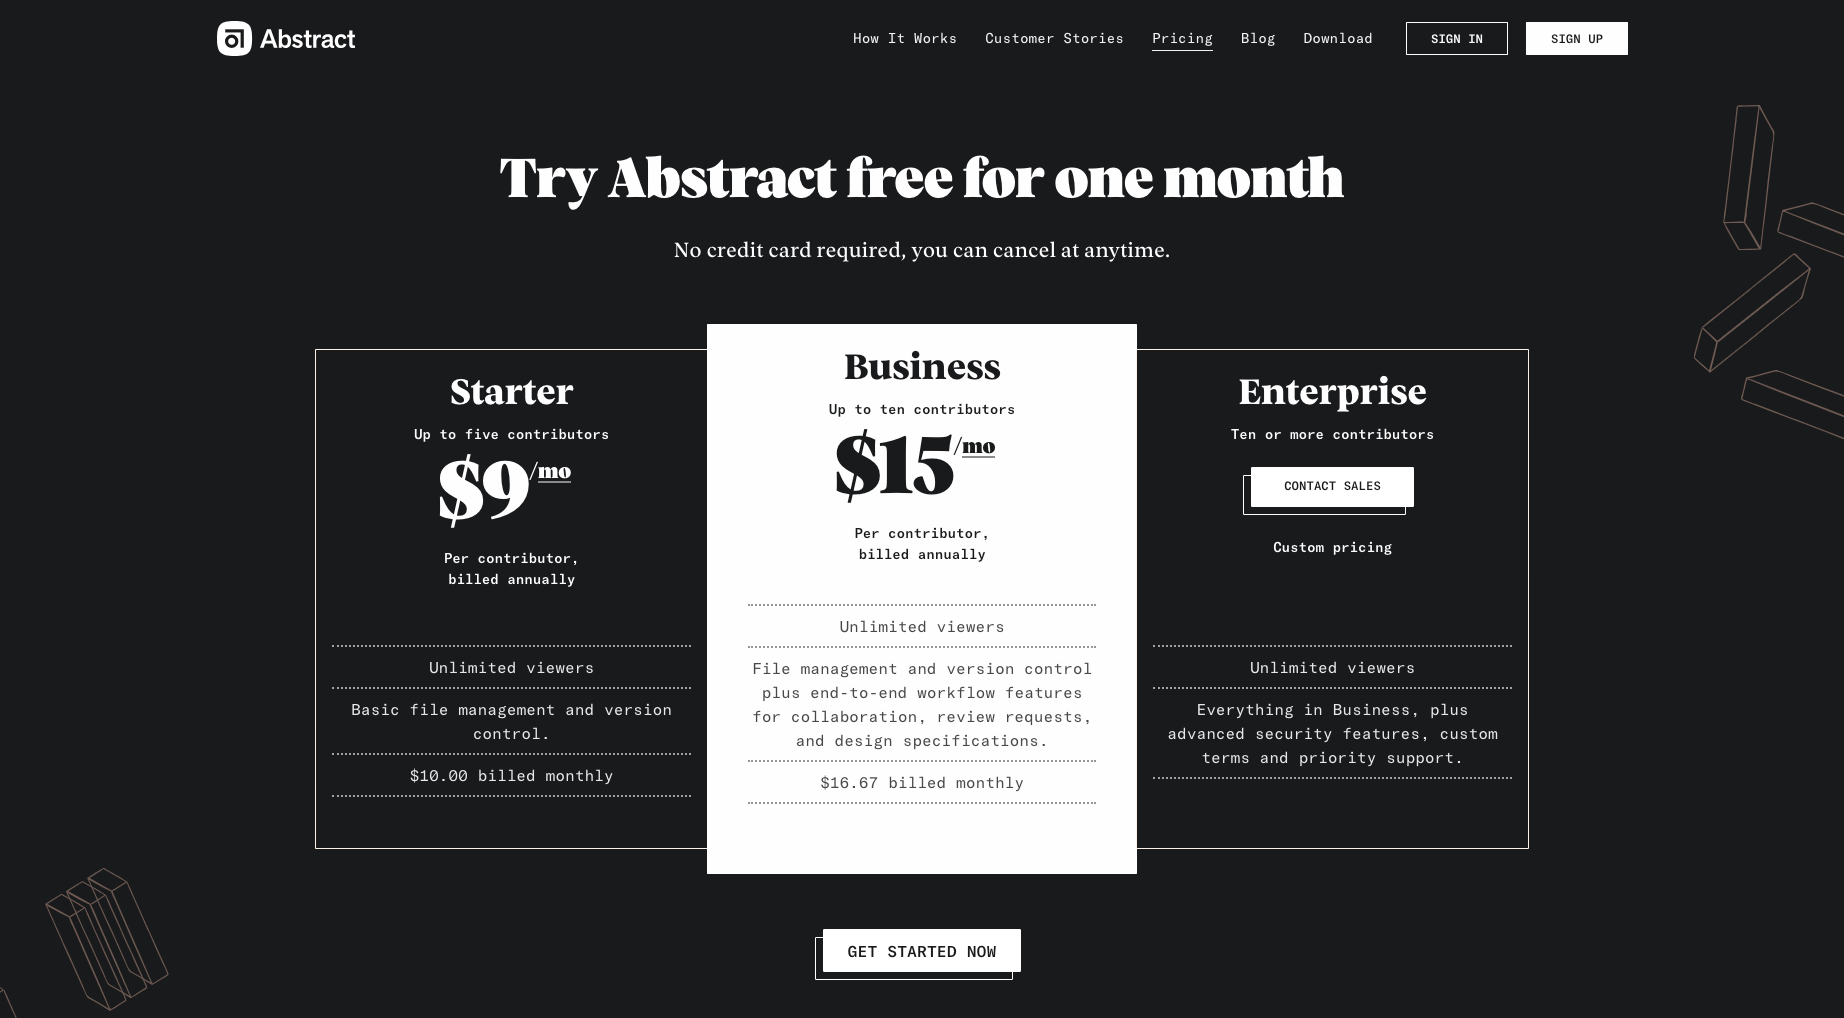 Abstract Demo - Abstract-Pricing.png